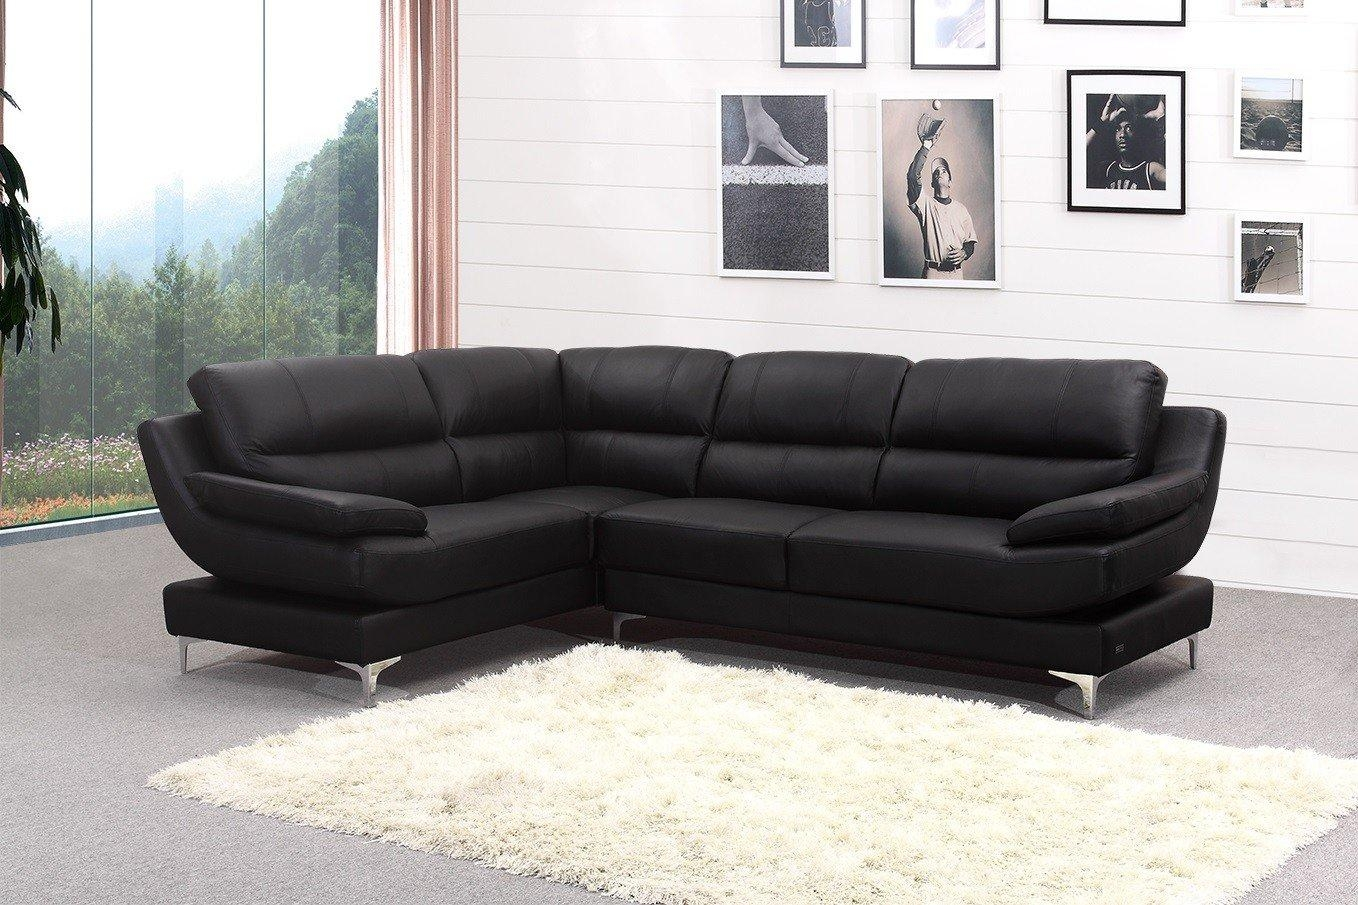 Leather Corner Sofa To Start A Life With Altered Environment For Large Black Leather Corner Sofas (View 10 of 22)